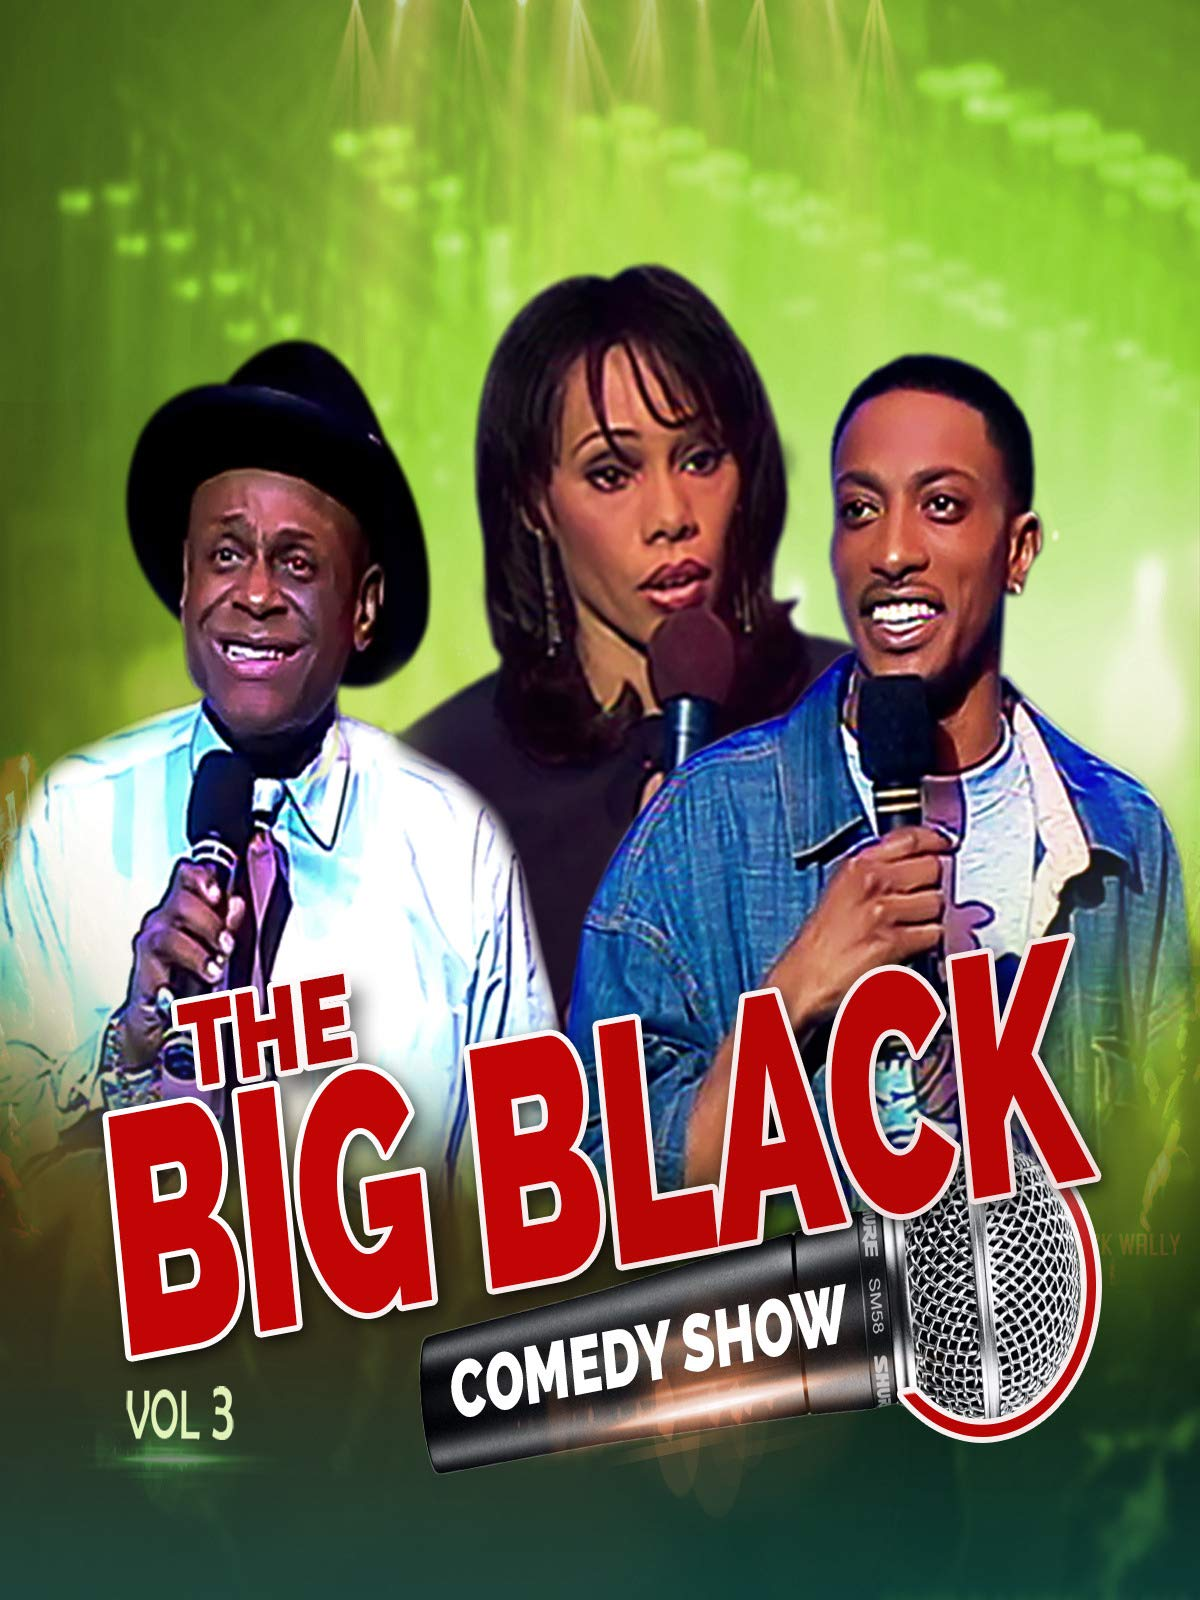 The Big Black Comedy Show, Vol. 3